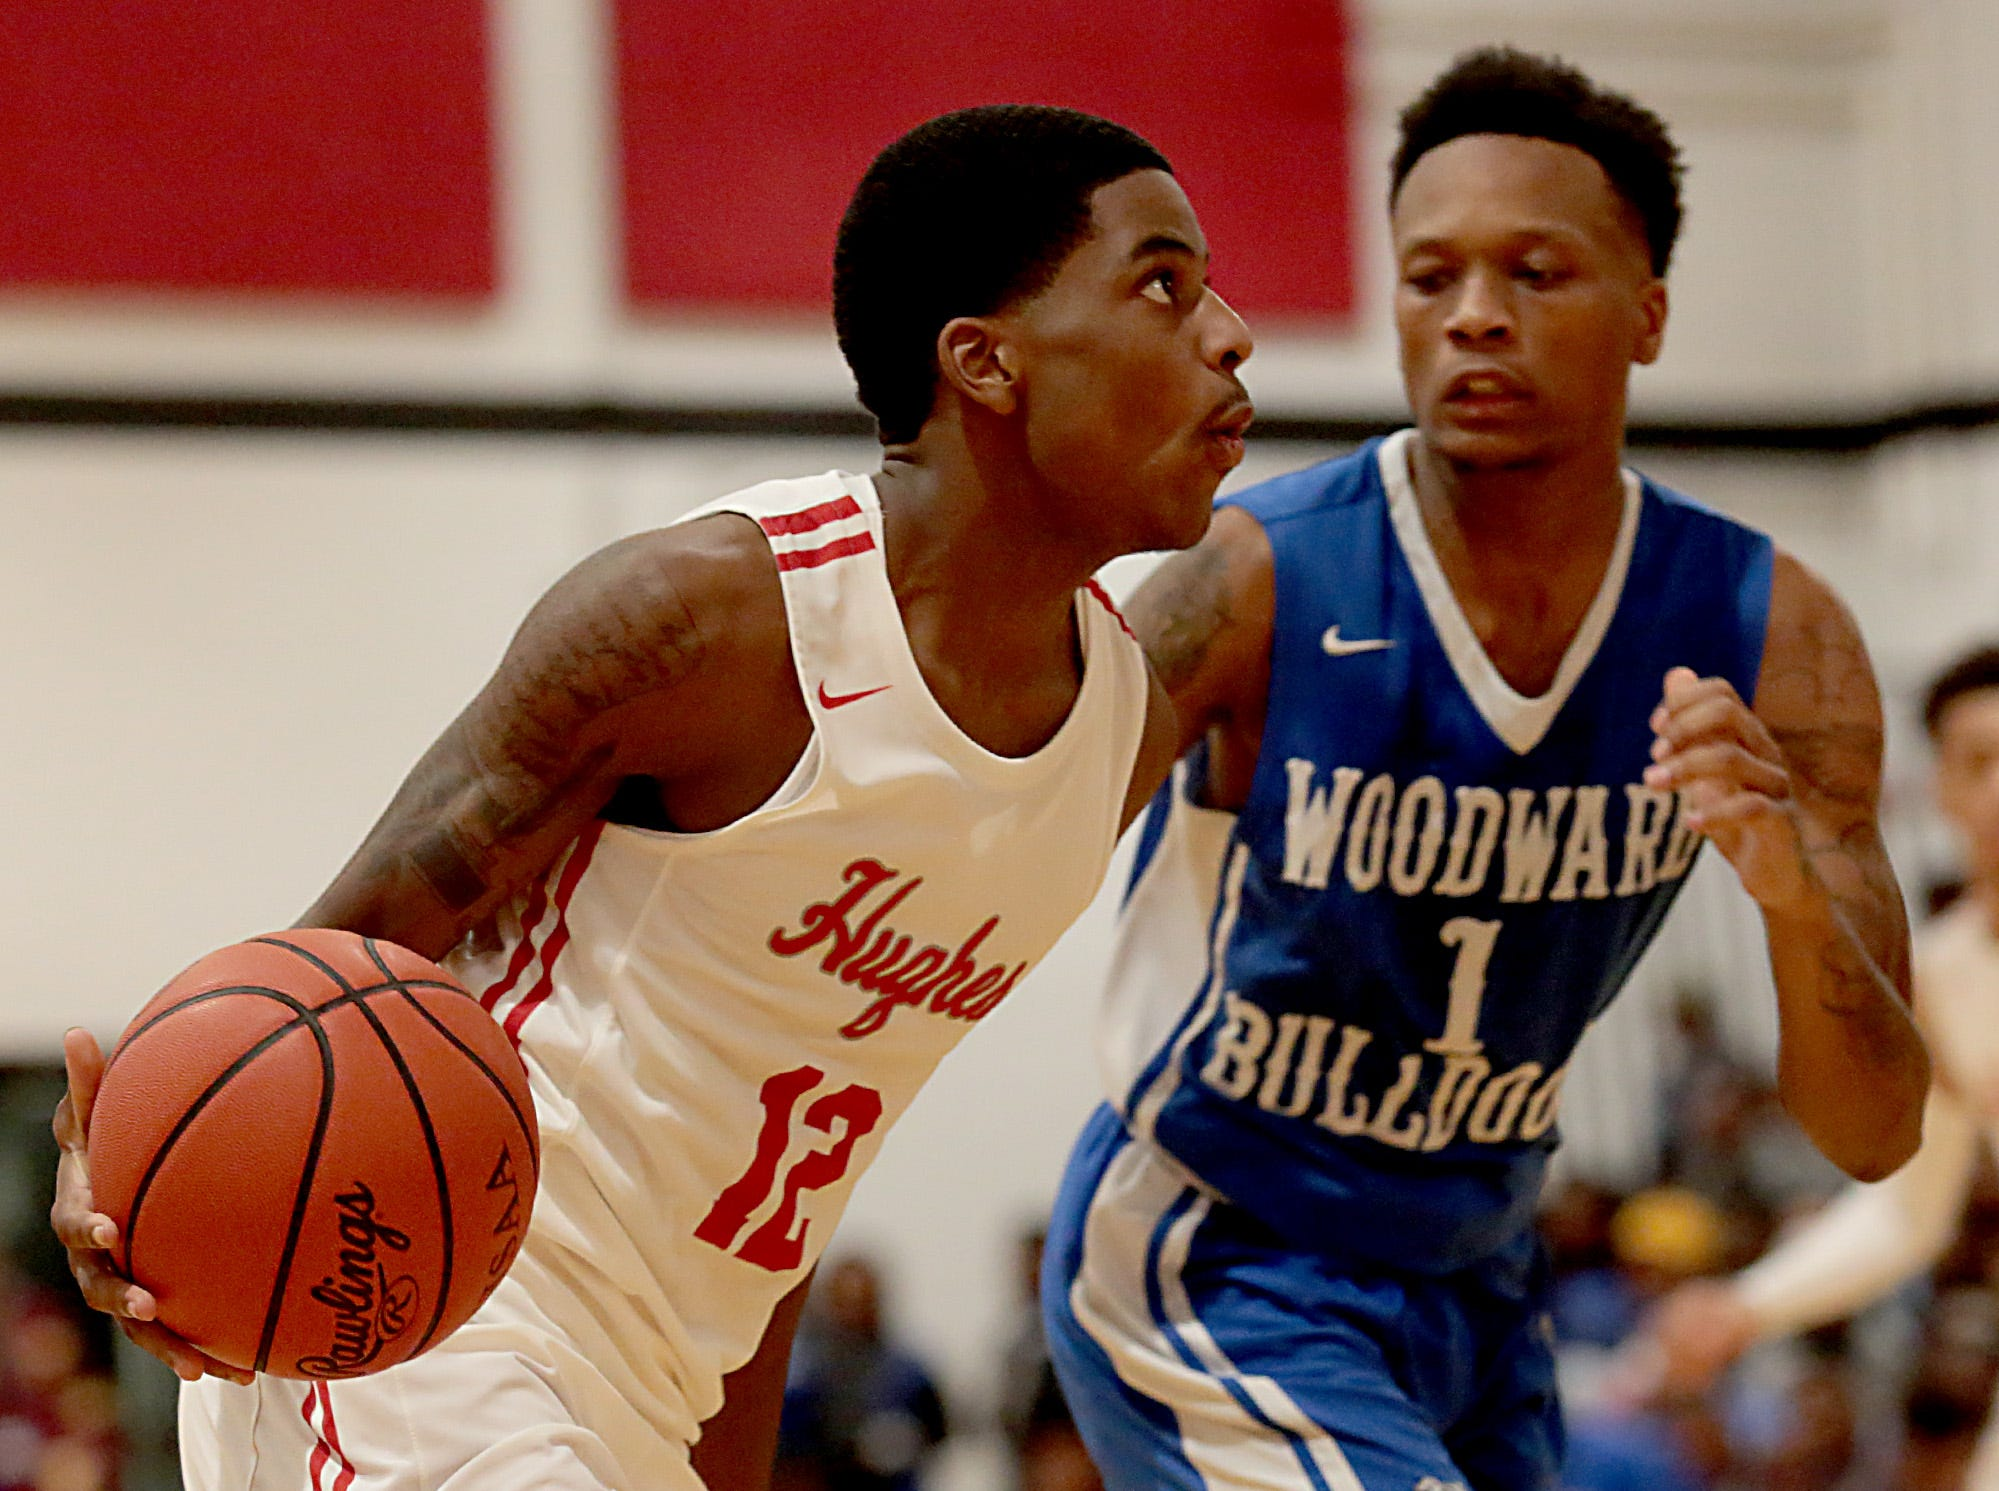 Hughes guard Camron McKenzie drives the lane as Woodward guard Dionte McBride pursues during their game at Hughes in Clifton Friday, Nov. 30, 2018.